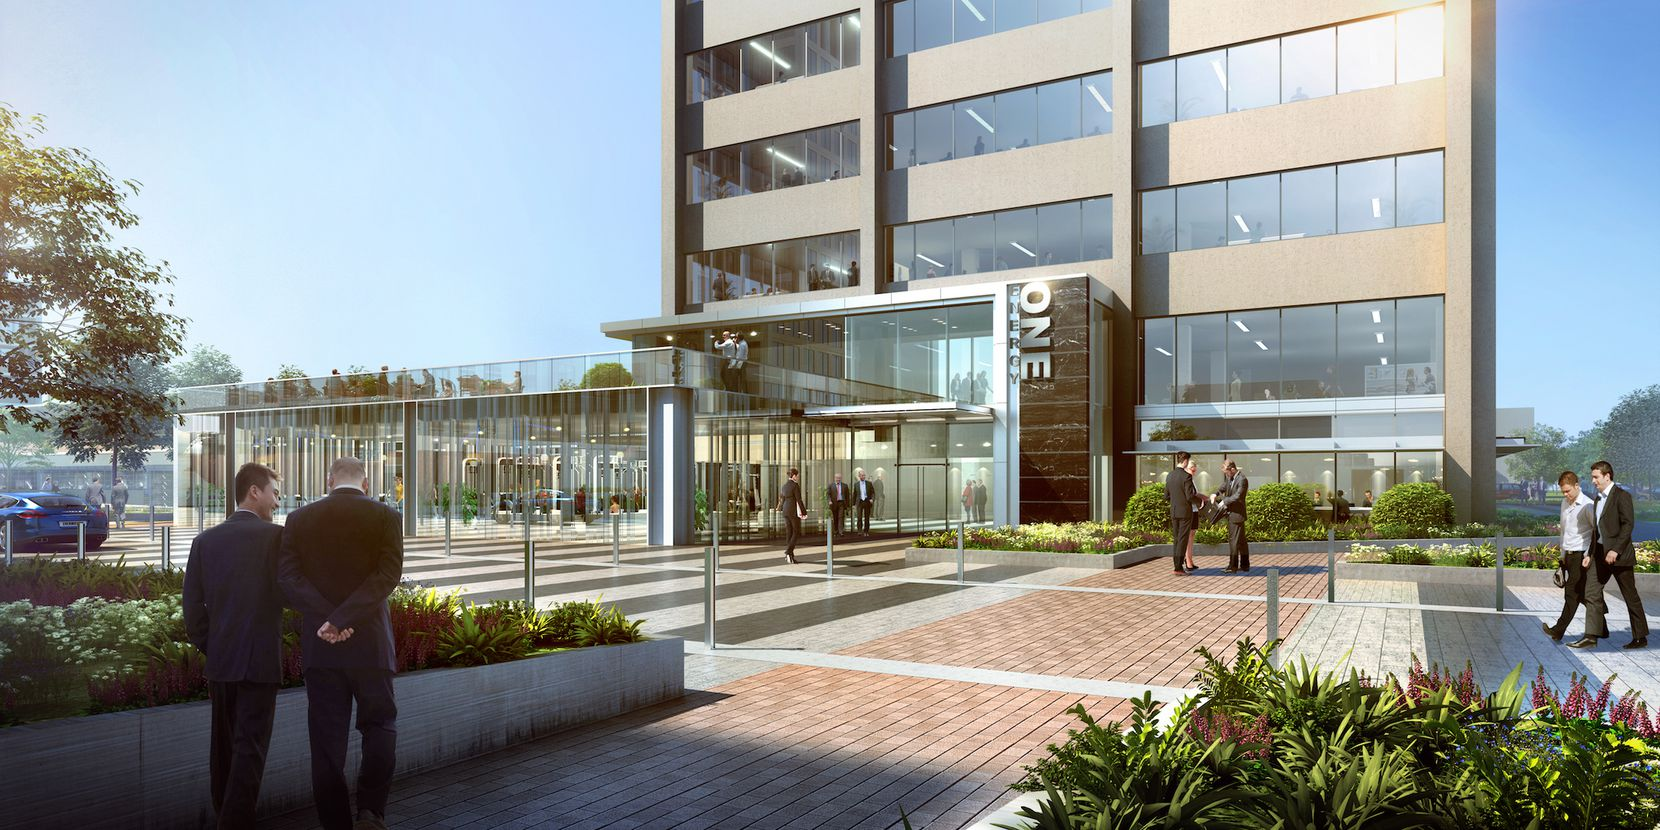 The Energy Square office buildings will get new entrances and lobby areas.